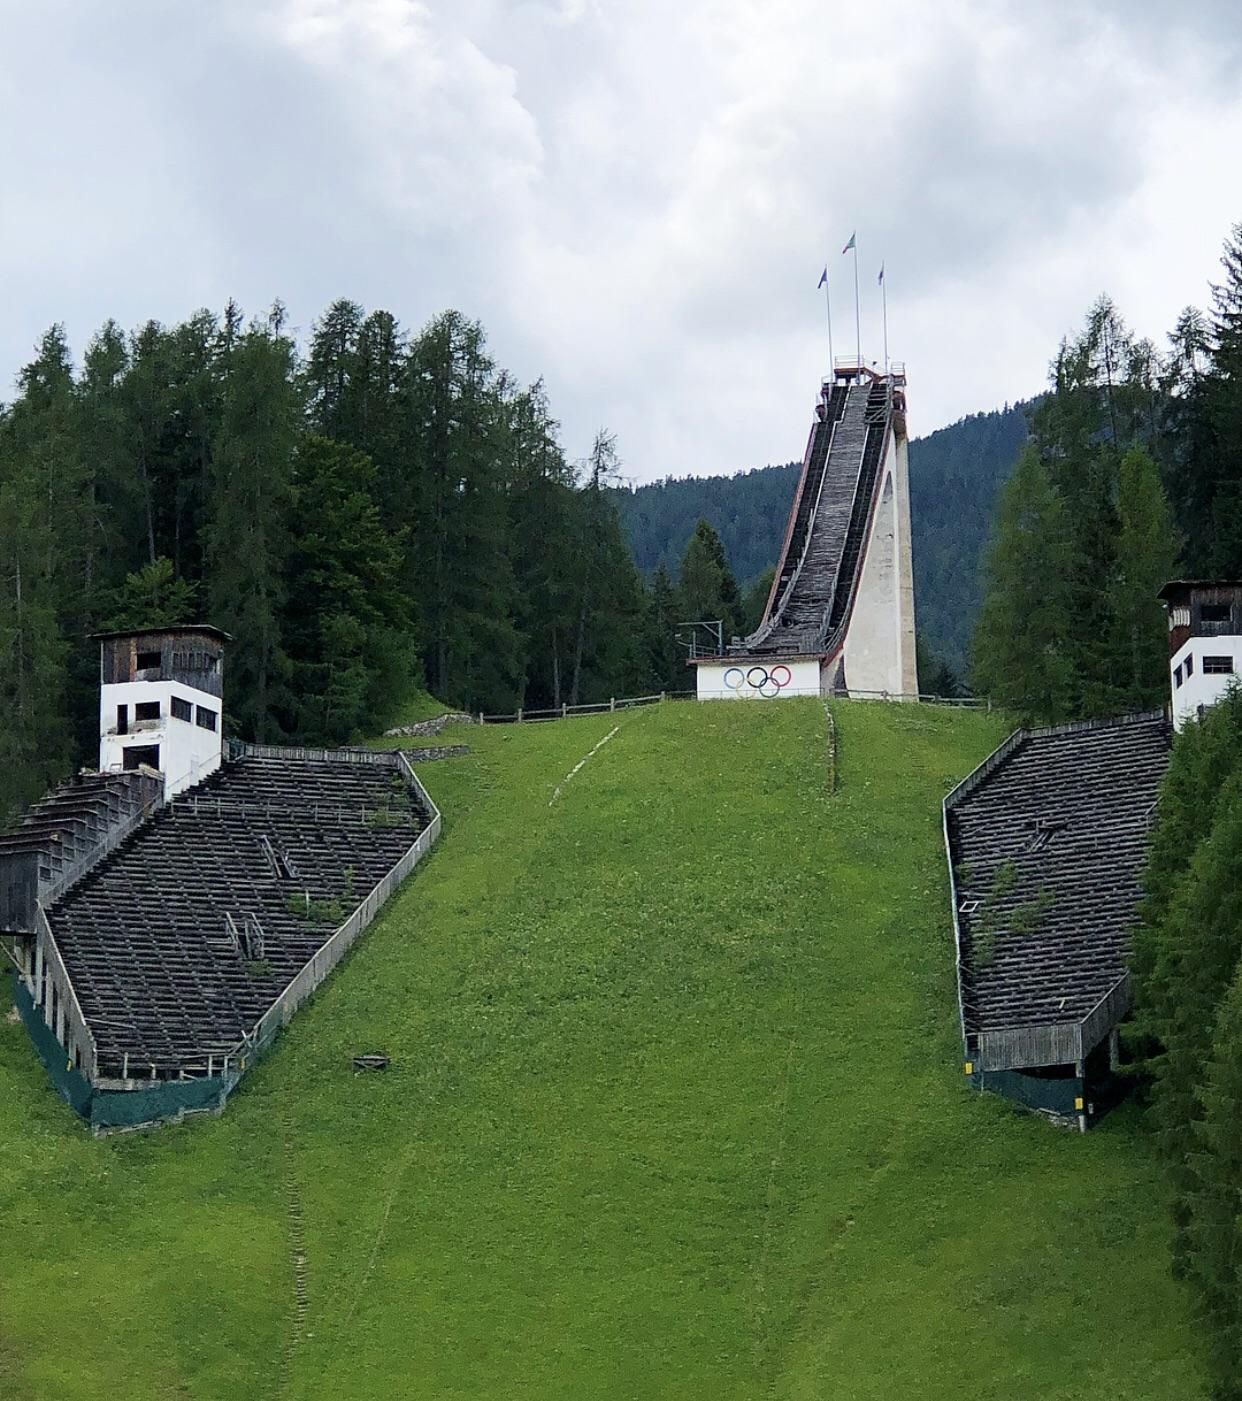 An abandoned ski jump from the 1956 Winter Olympics held